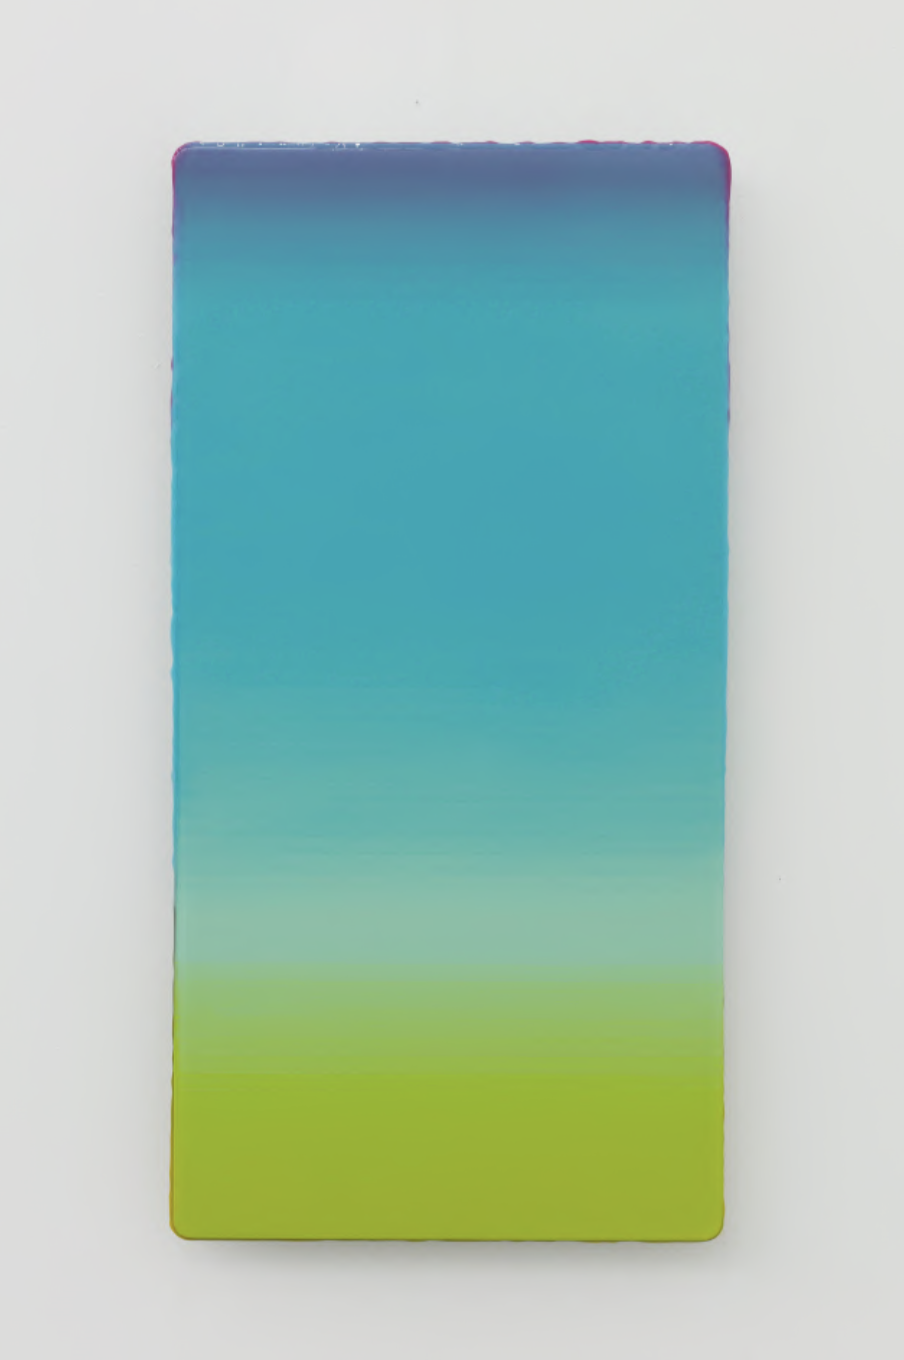 Wang Yi,  Panorama 2018-7 , mixed media on aluminum, 60×30cm, 2018. Courtesy of the artiste and the HdM Gallery.